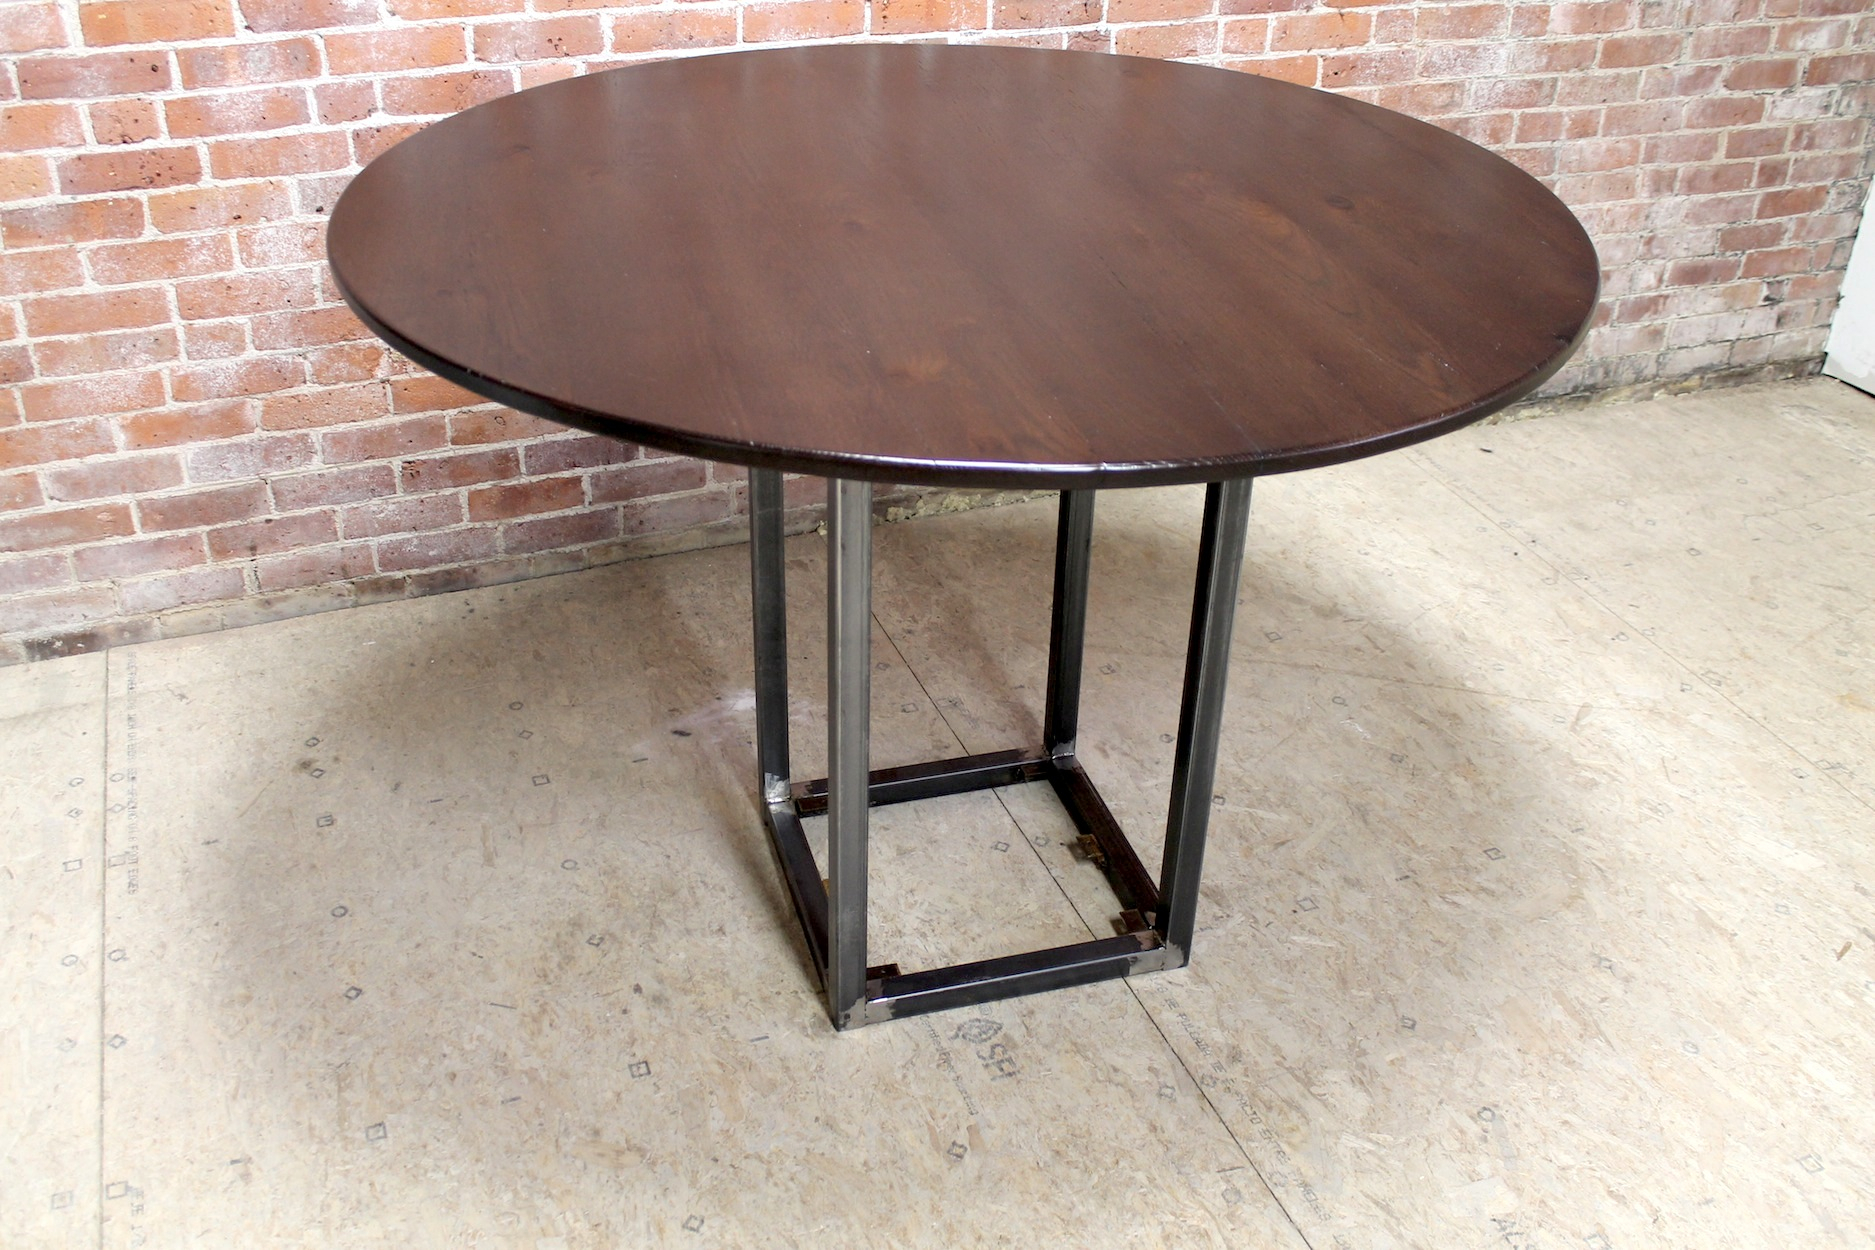 54 Inch Round Counter Height Table | Lake And Mountain Home In Most Current Andrelle Bar Height Pedestal Dining Tables (View 10 of 15)